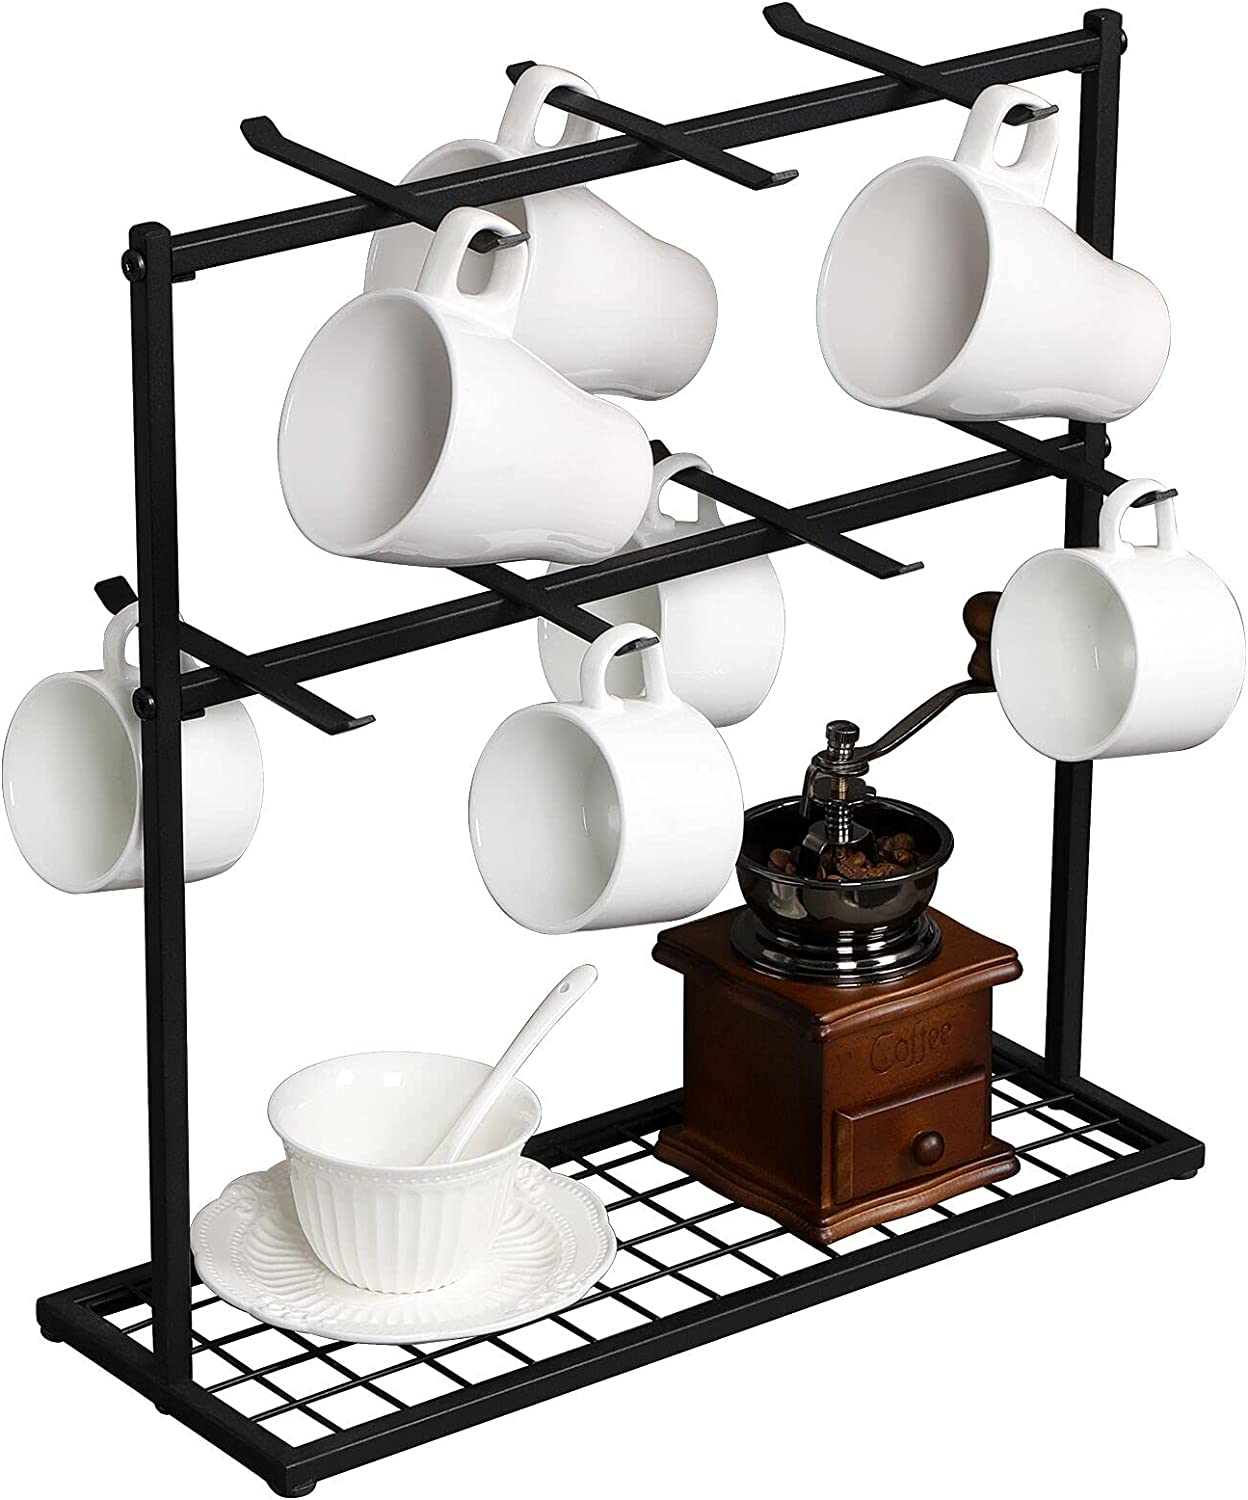 OROPY Coffee Mug Challenge the lowest price Holder Stand 2 Animer and price revision Countertop Tree Tier